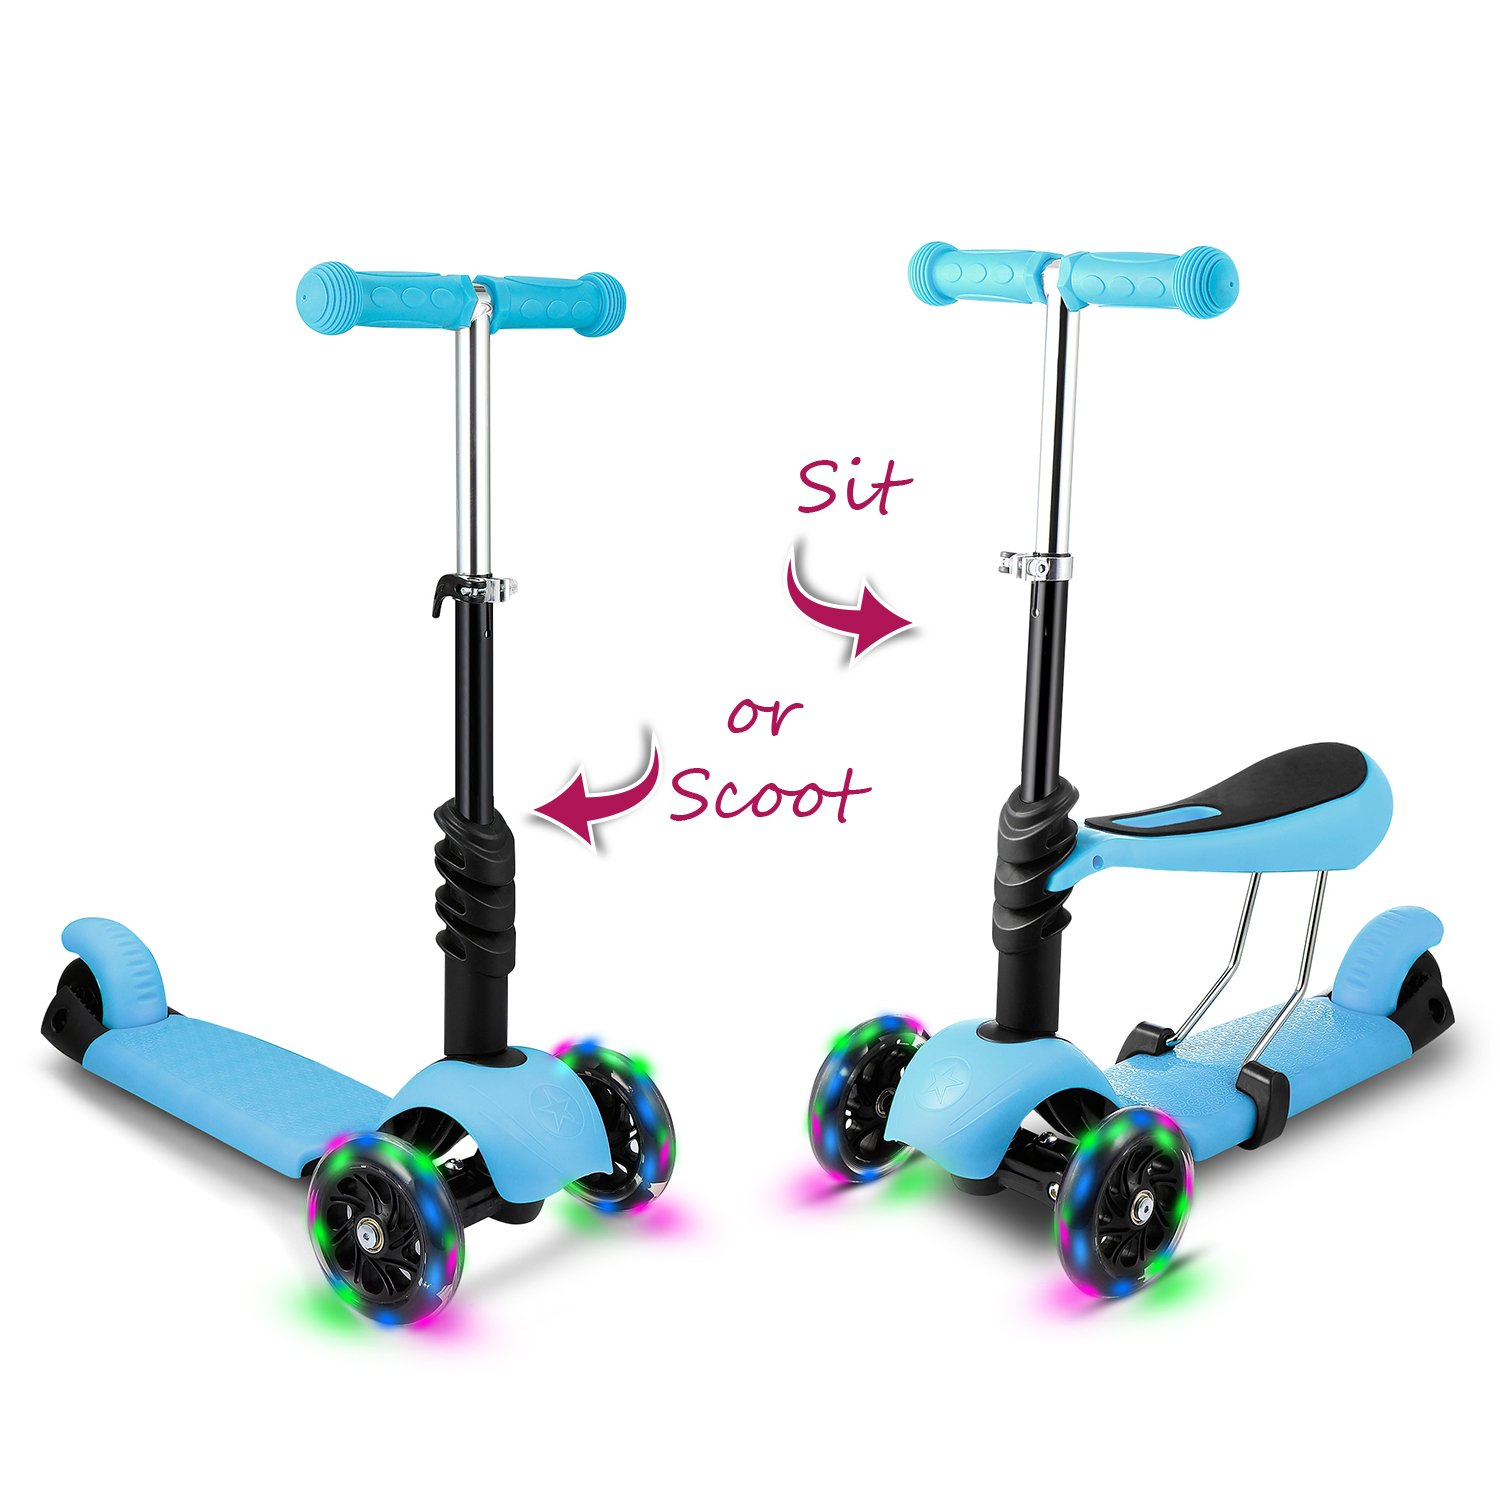 Hikole Kids Toddler Kick Scooter with Seat | Three-Wheeled Mini Foldable Adjustable Push Fun Exercise Toy Scooter with LED Flashing Wheels, Birthday Gift for Boys Girls Age 2 Up (Blue)